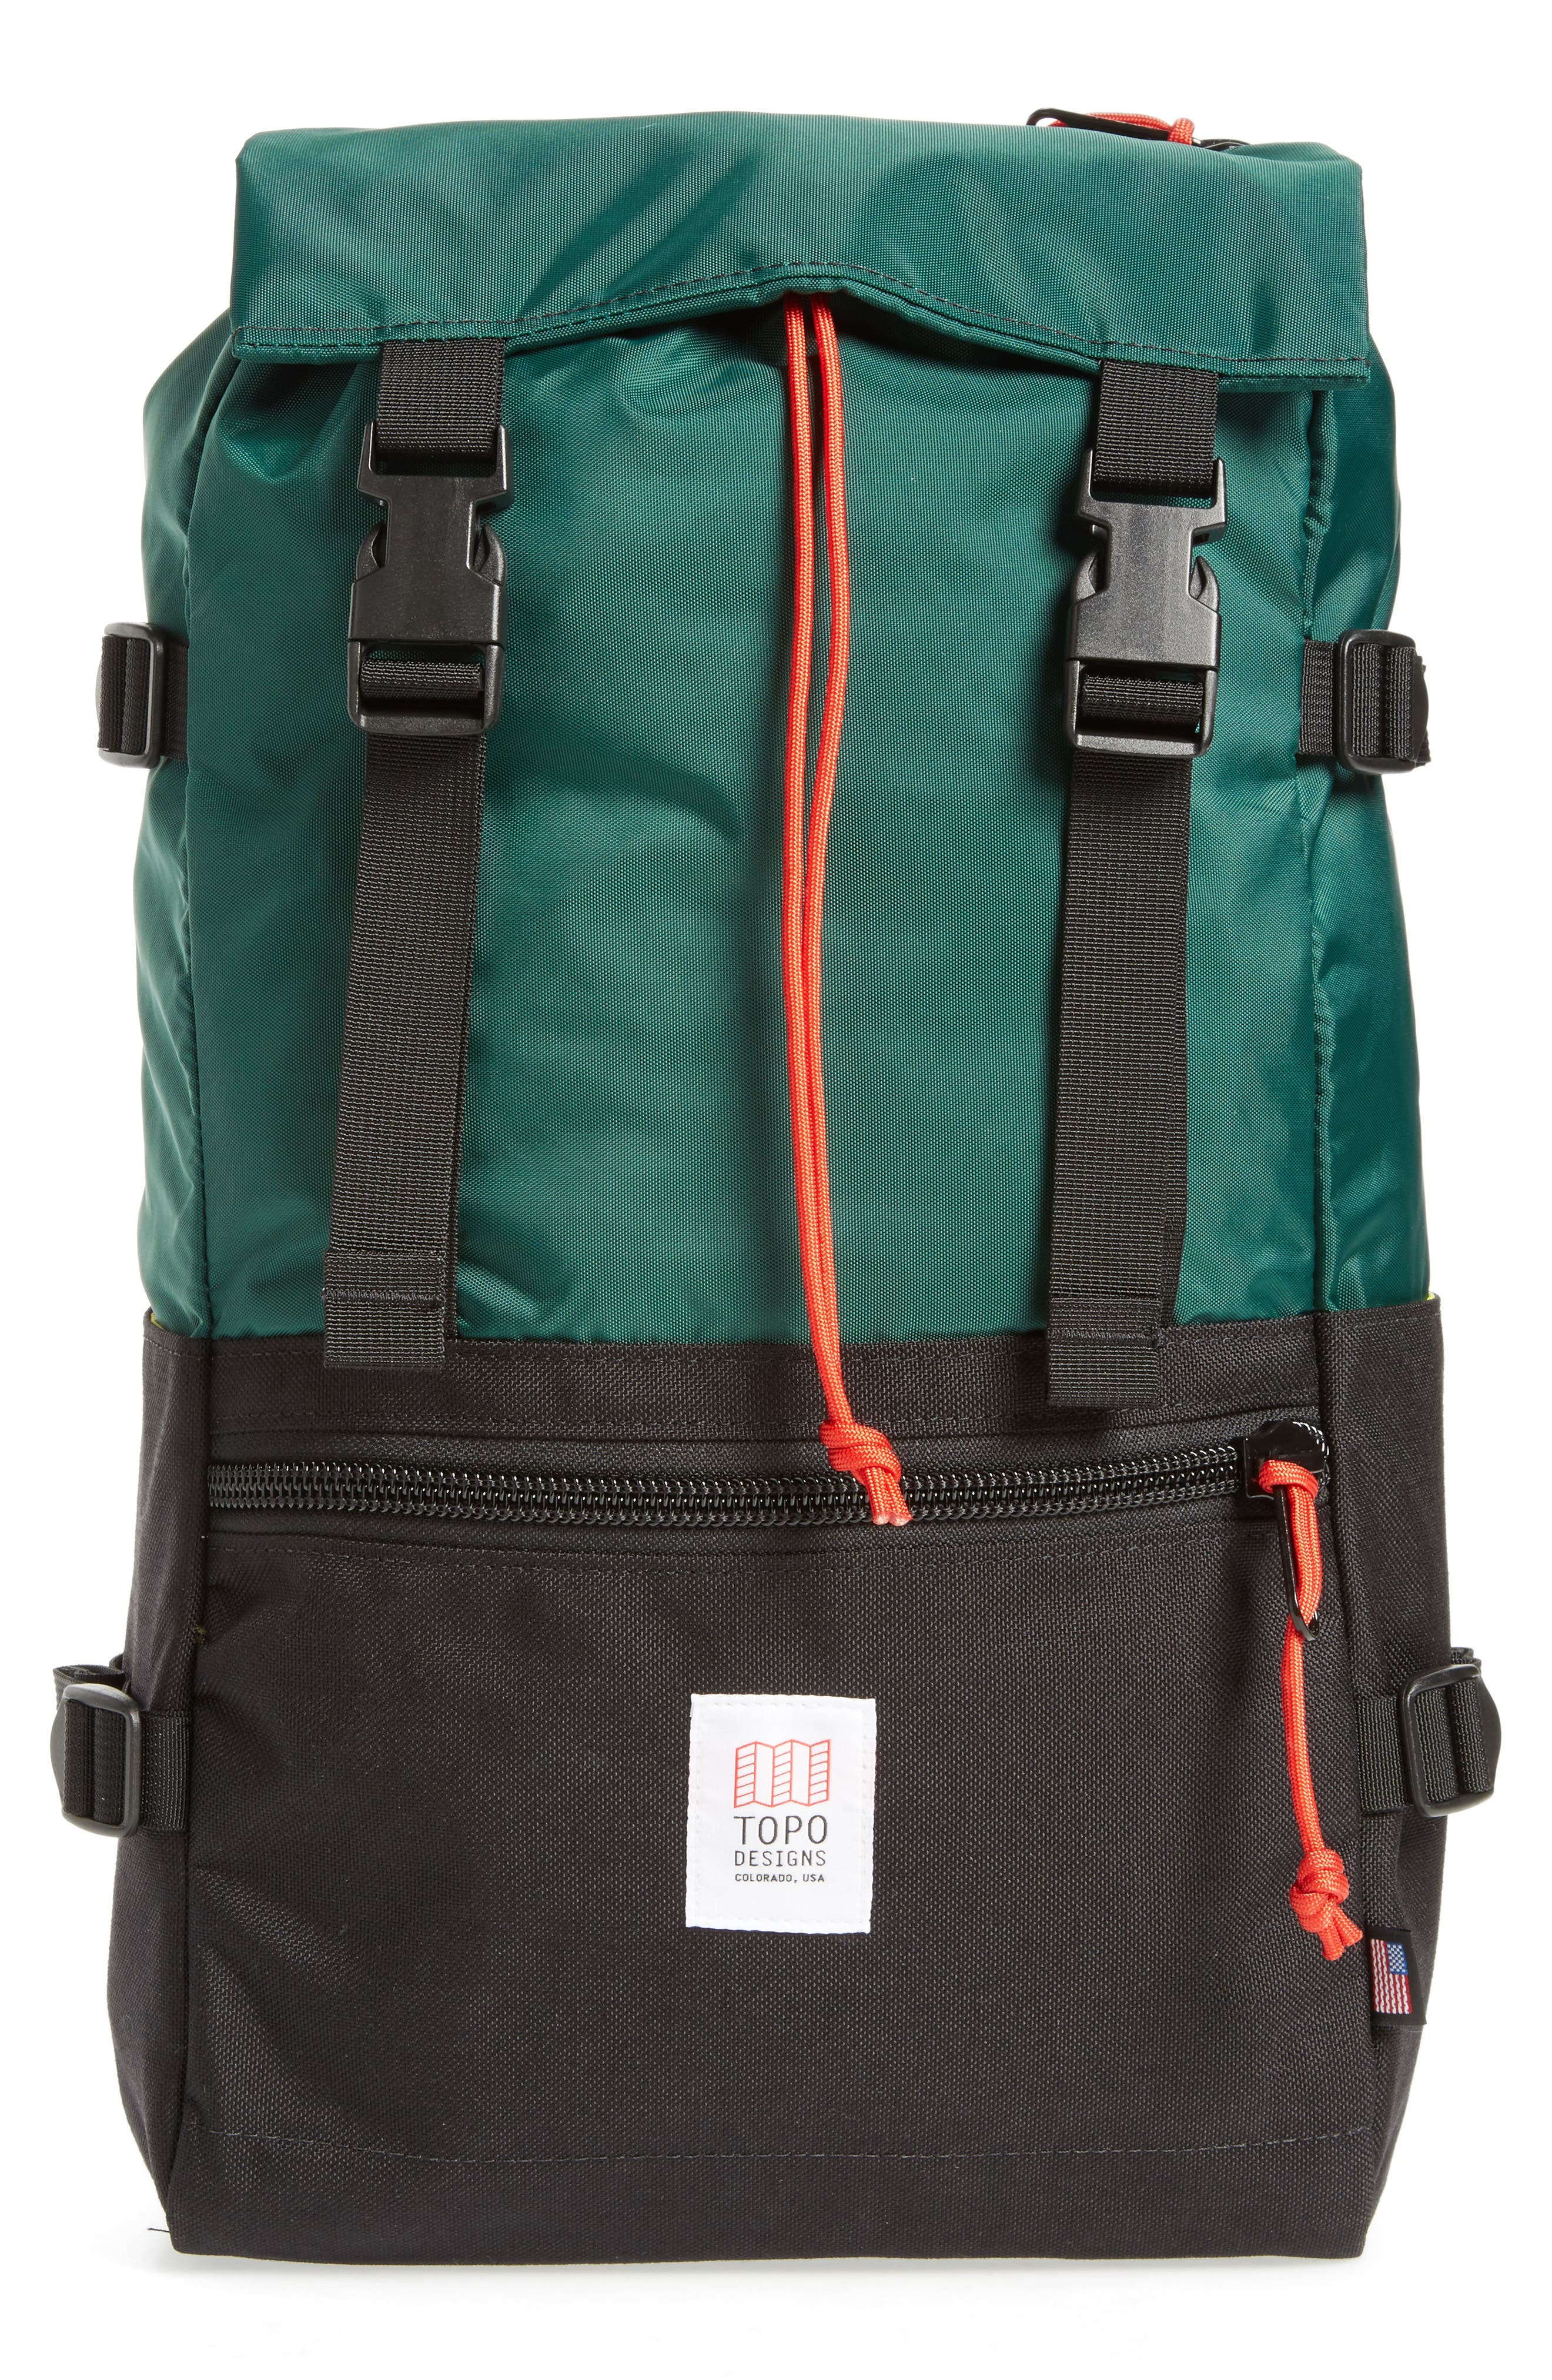 TOPO DESIGNS ROVER BACKPACK - GREEN